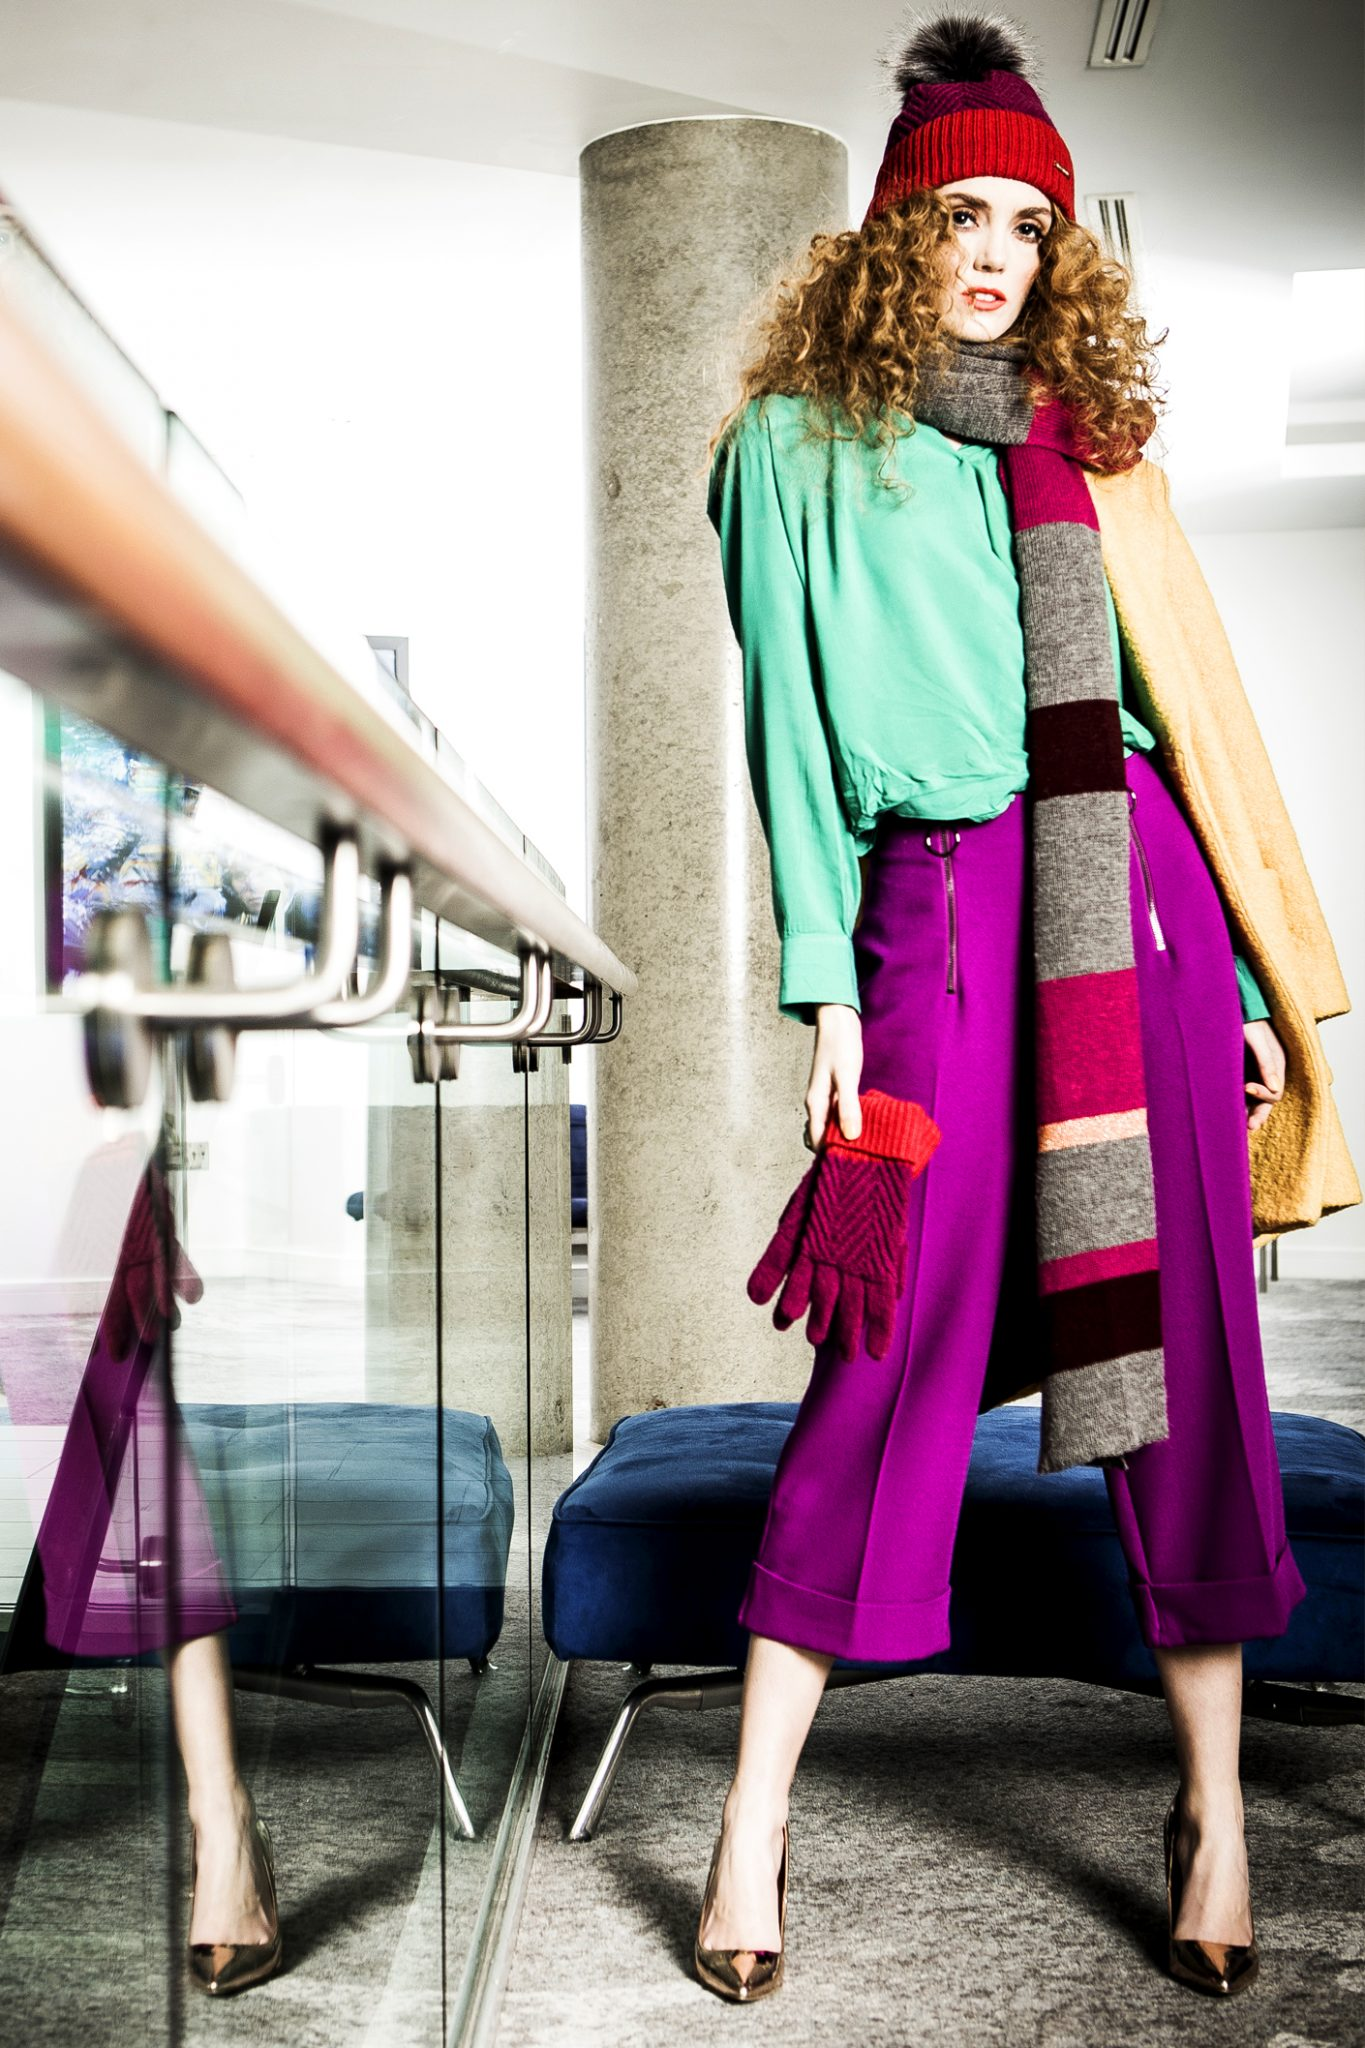 fashion-photography-on-location-at-the-lowry-hotel-manchester